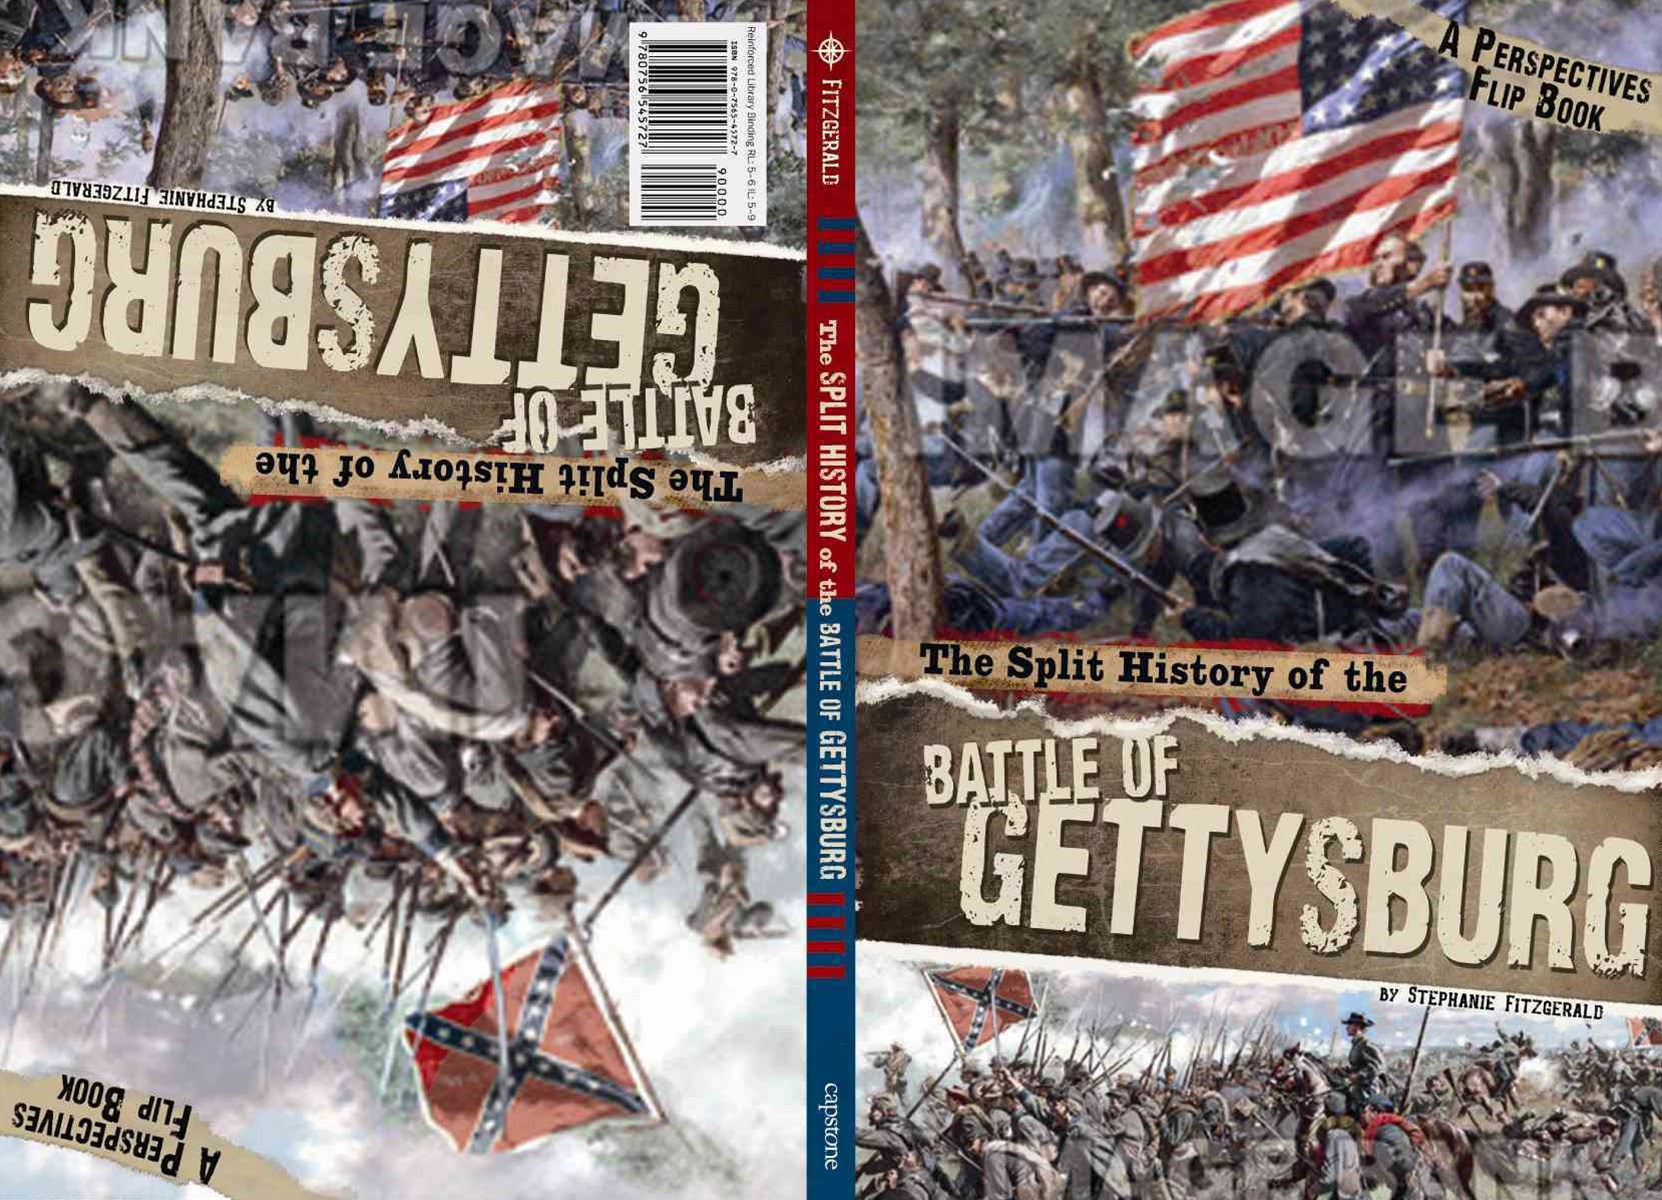 Split History of the Battle of Gettysburg